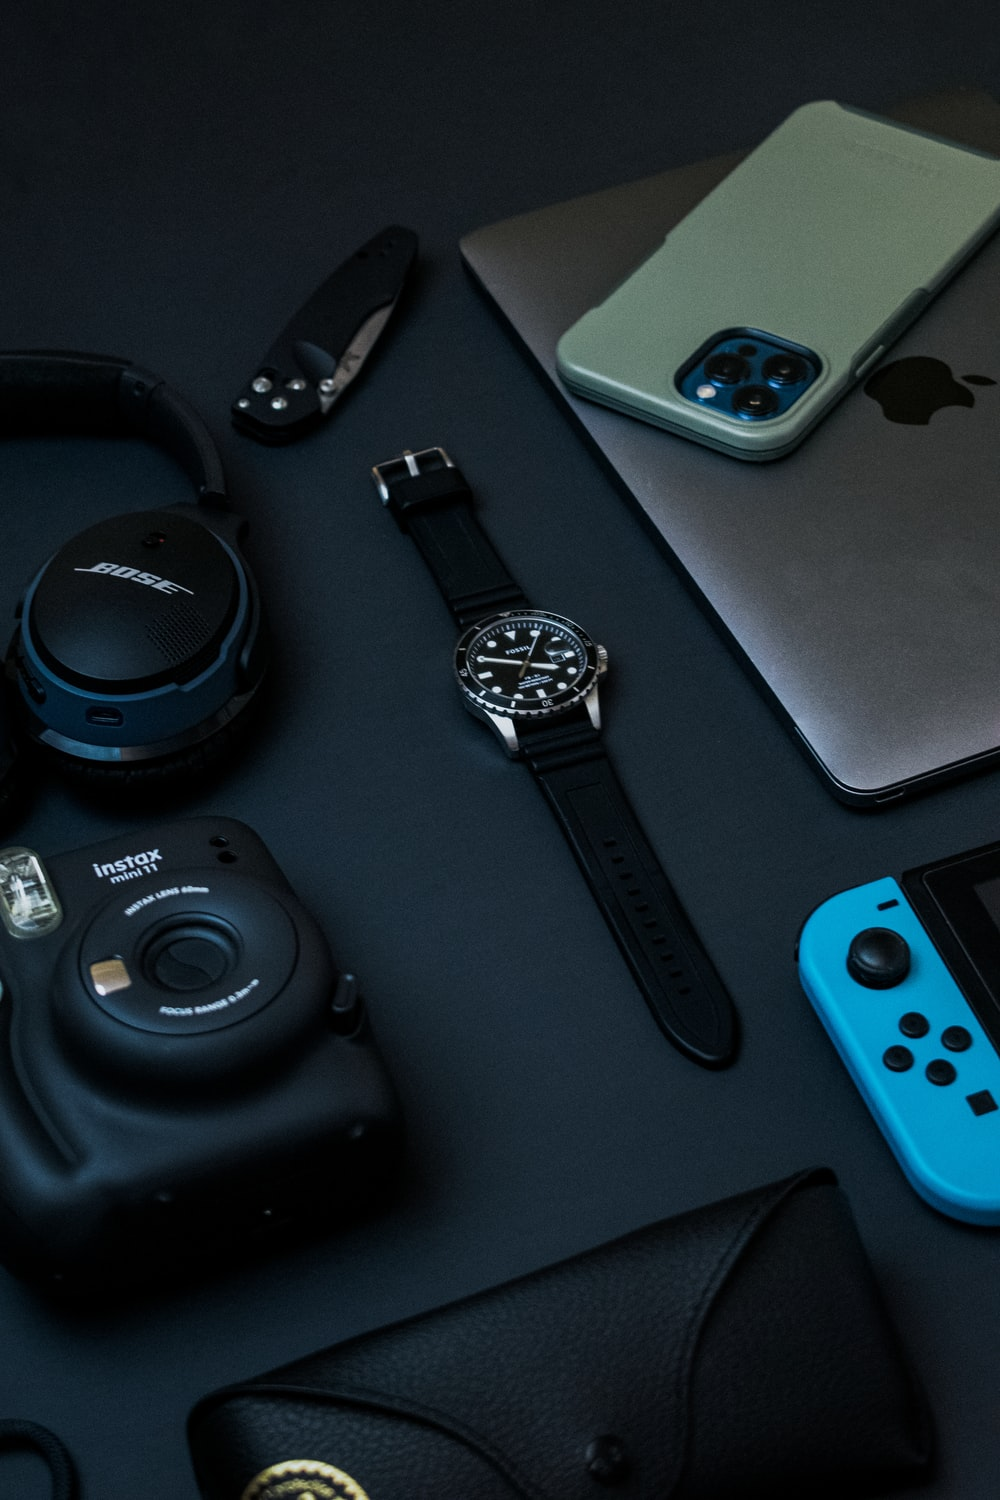 black and silver round analog watch beside silver iphone 6 and black and silver round watch